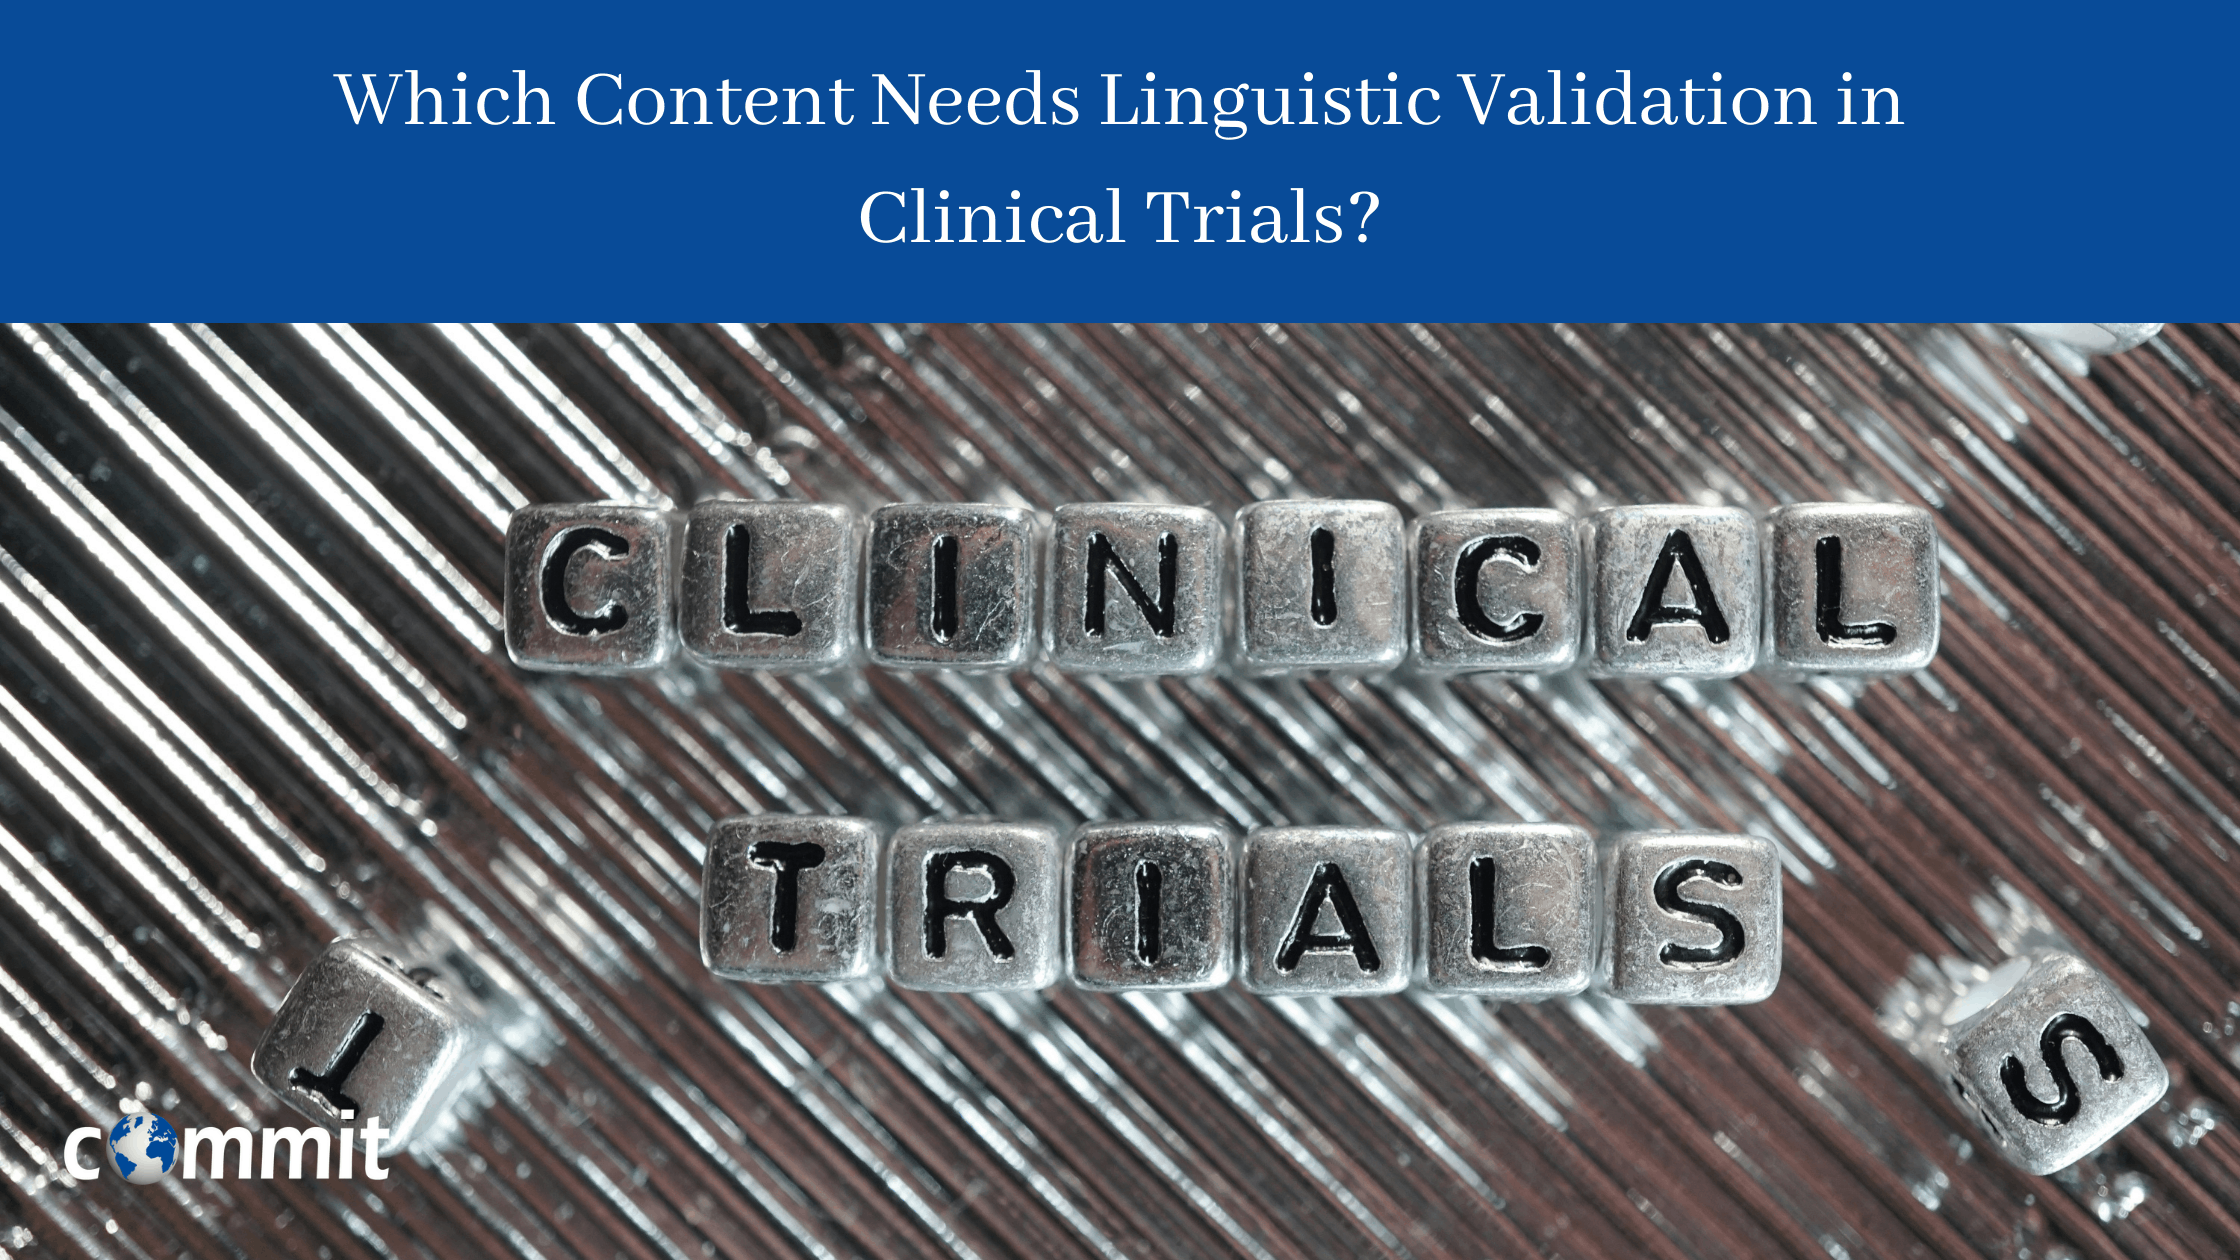 Which Content Needs Linguistic Validation in Clinical Trials?